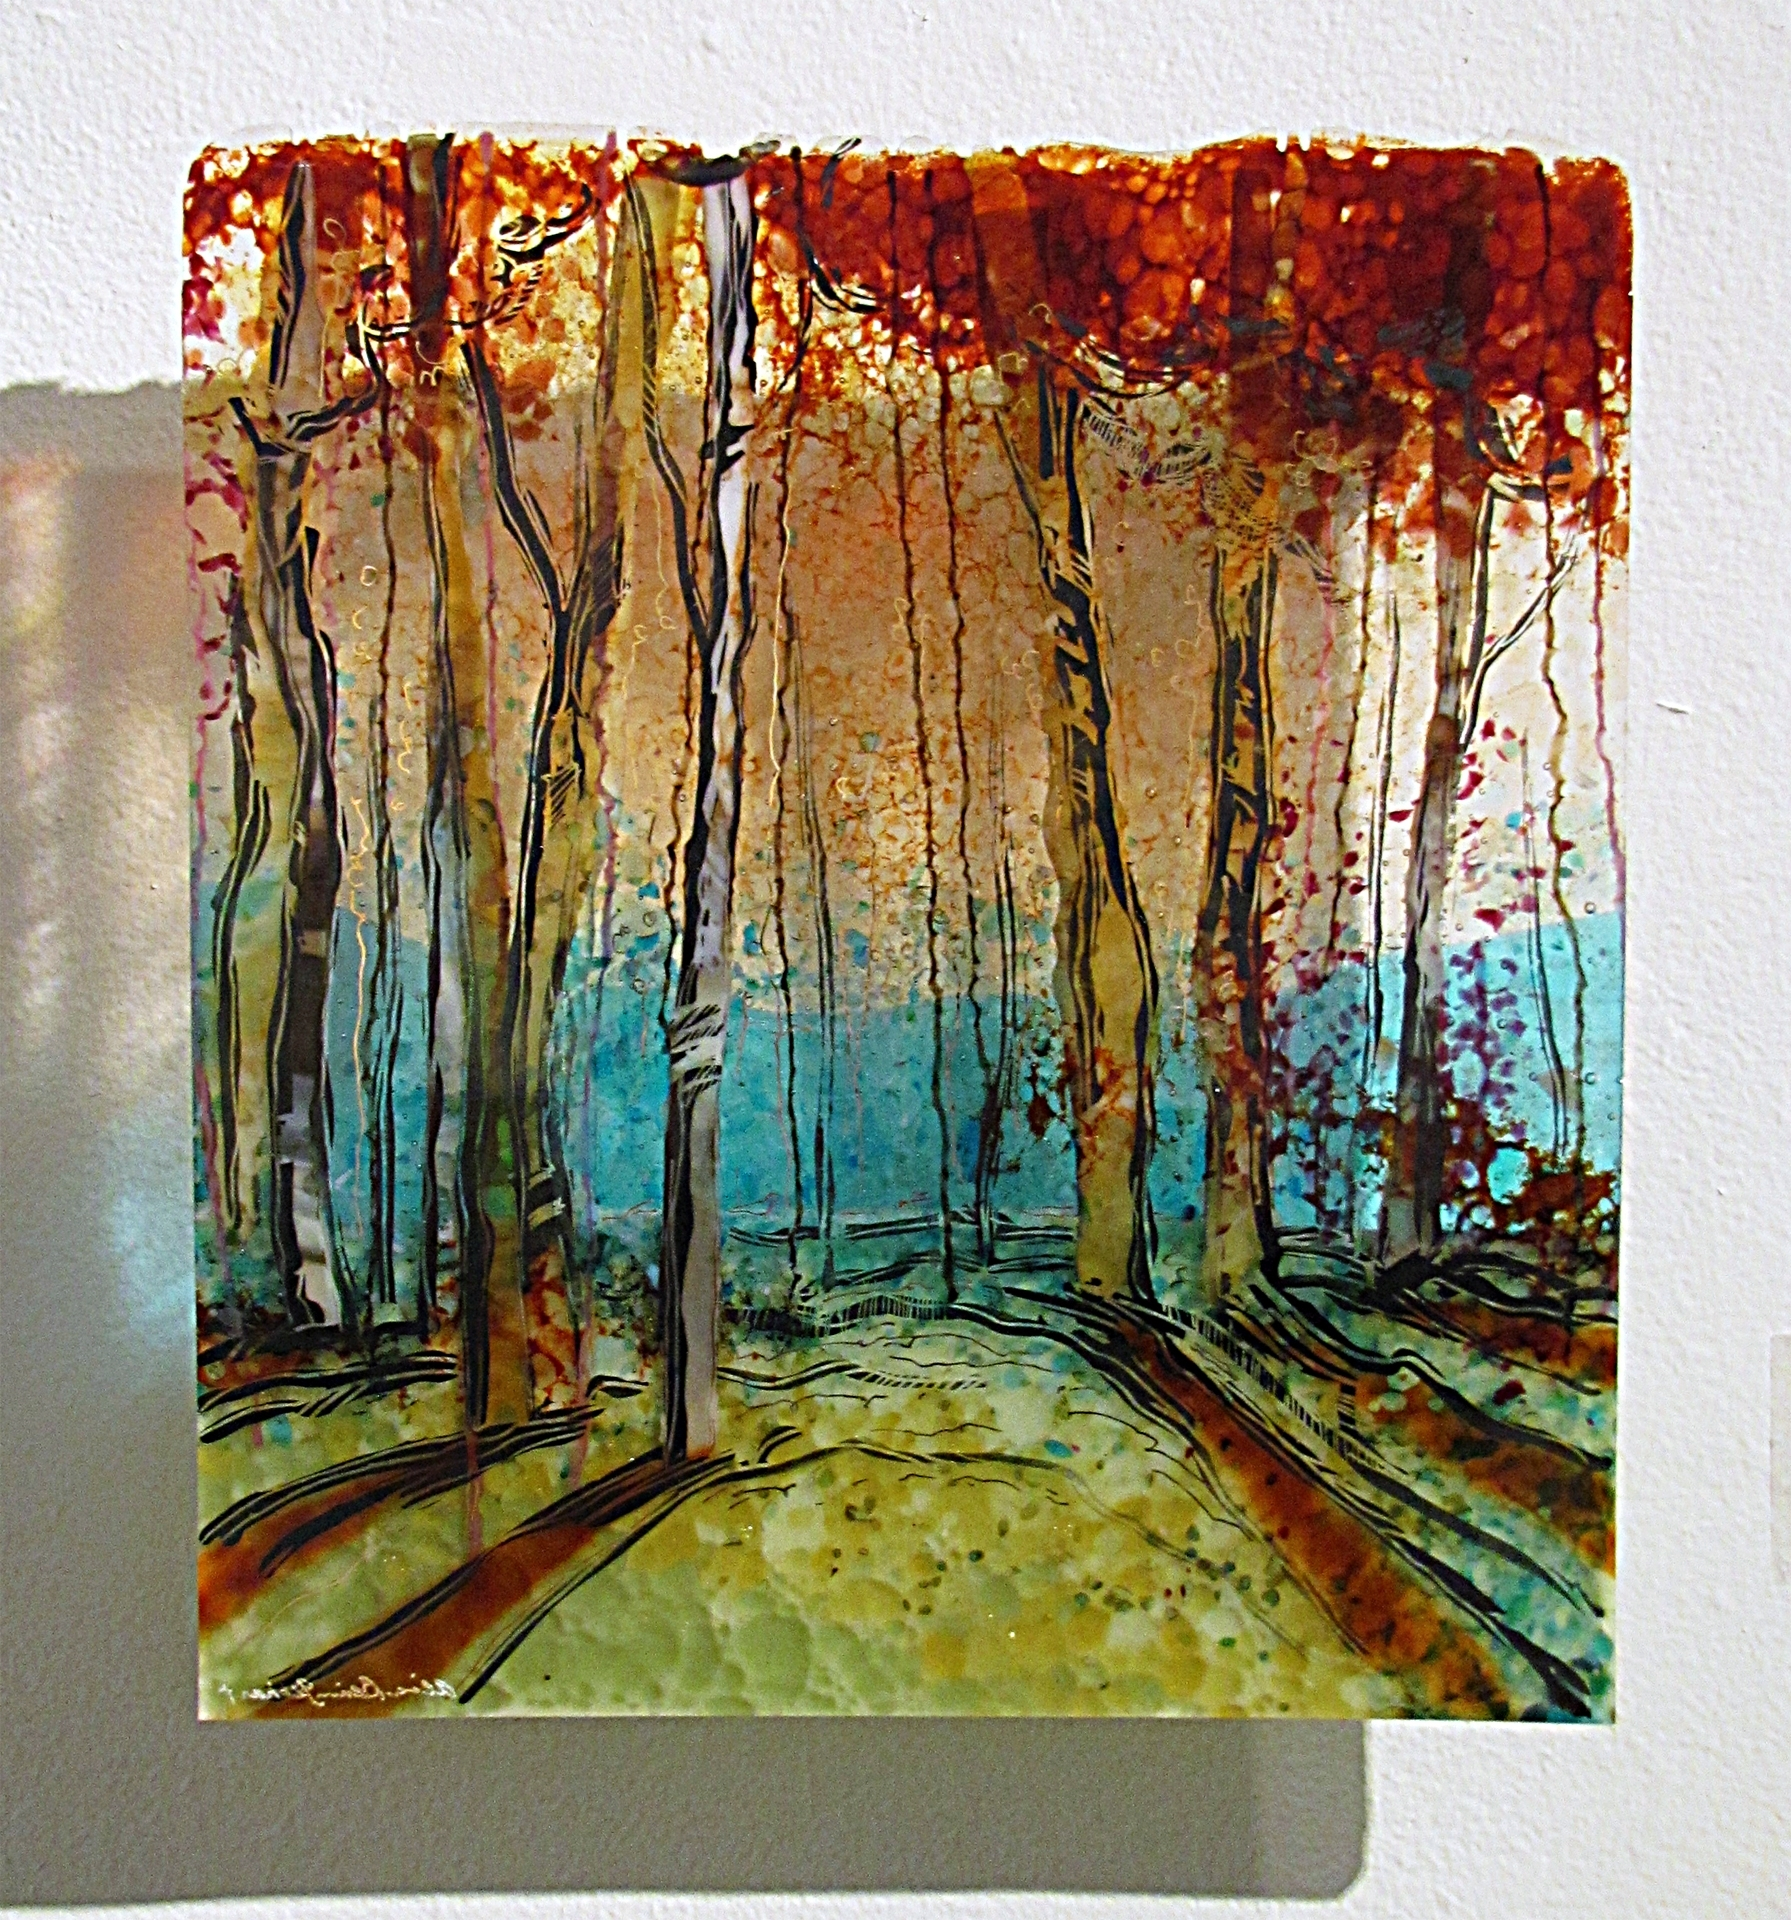 Kiln Fused Glass Wall Art Throughout Most Recently Released Nature's Curtain, Kiln Fired Glass Wall Panelalice Benvie (Gallery 1 of 15)